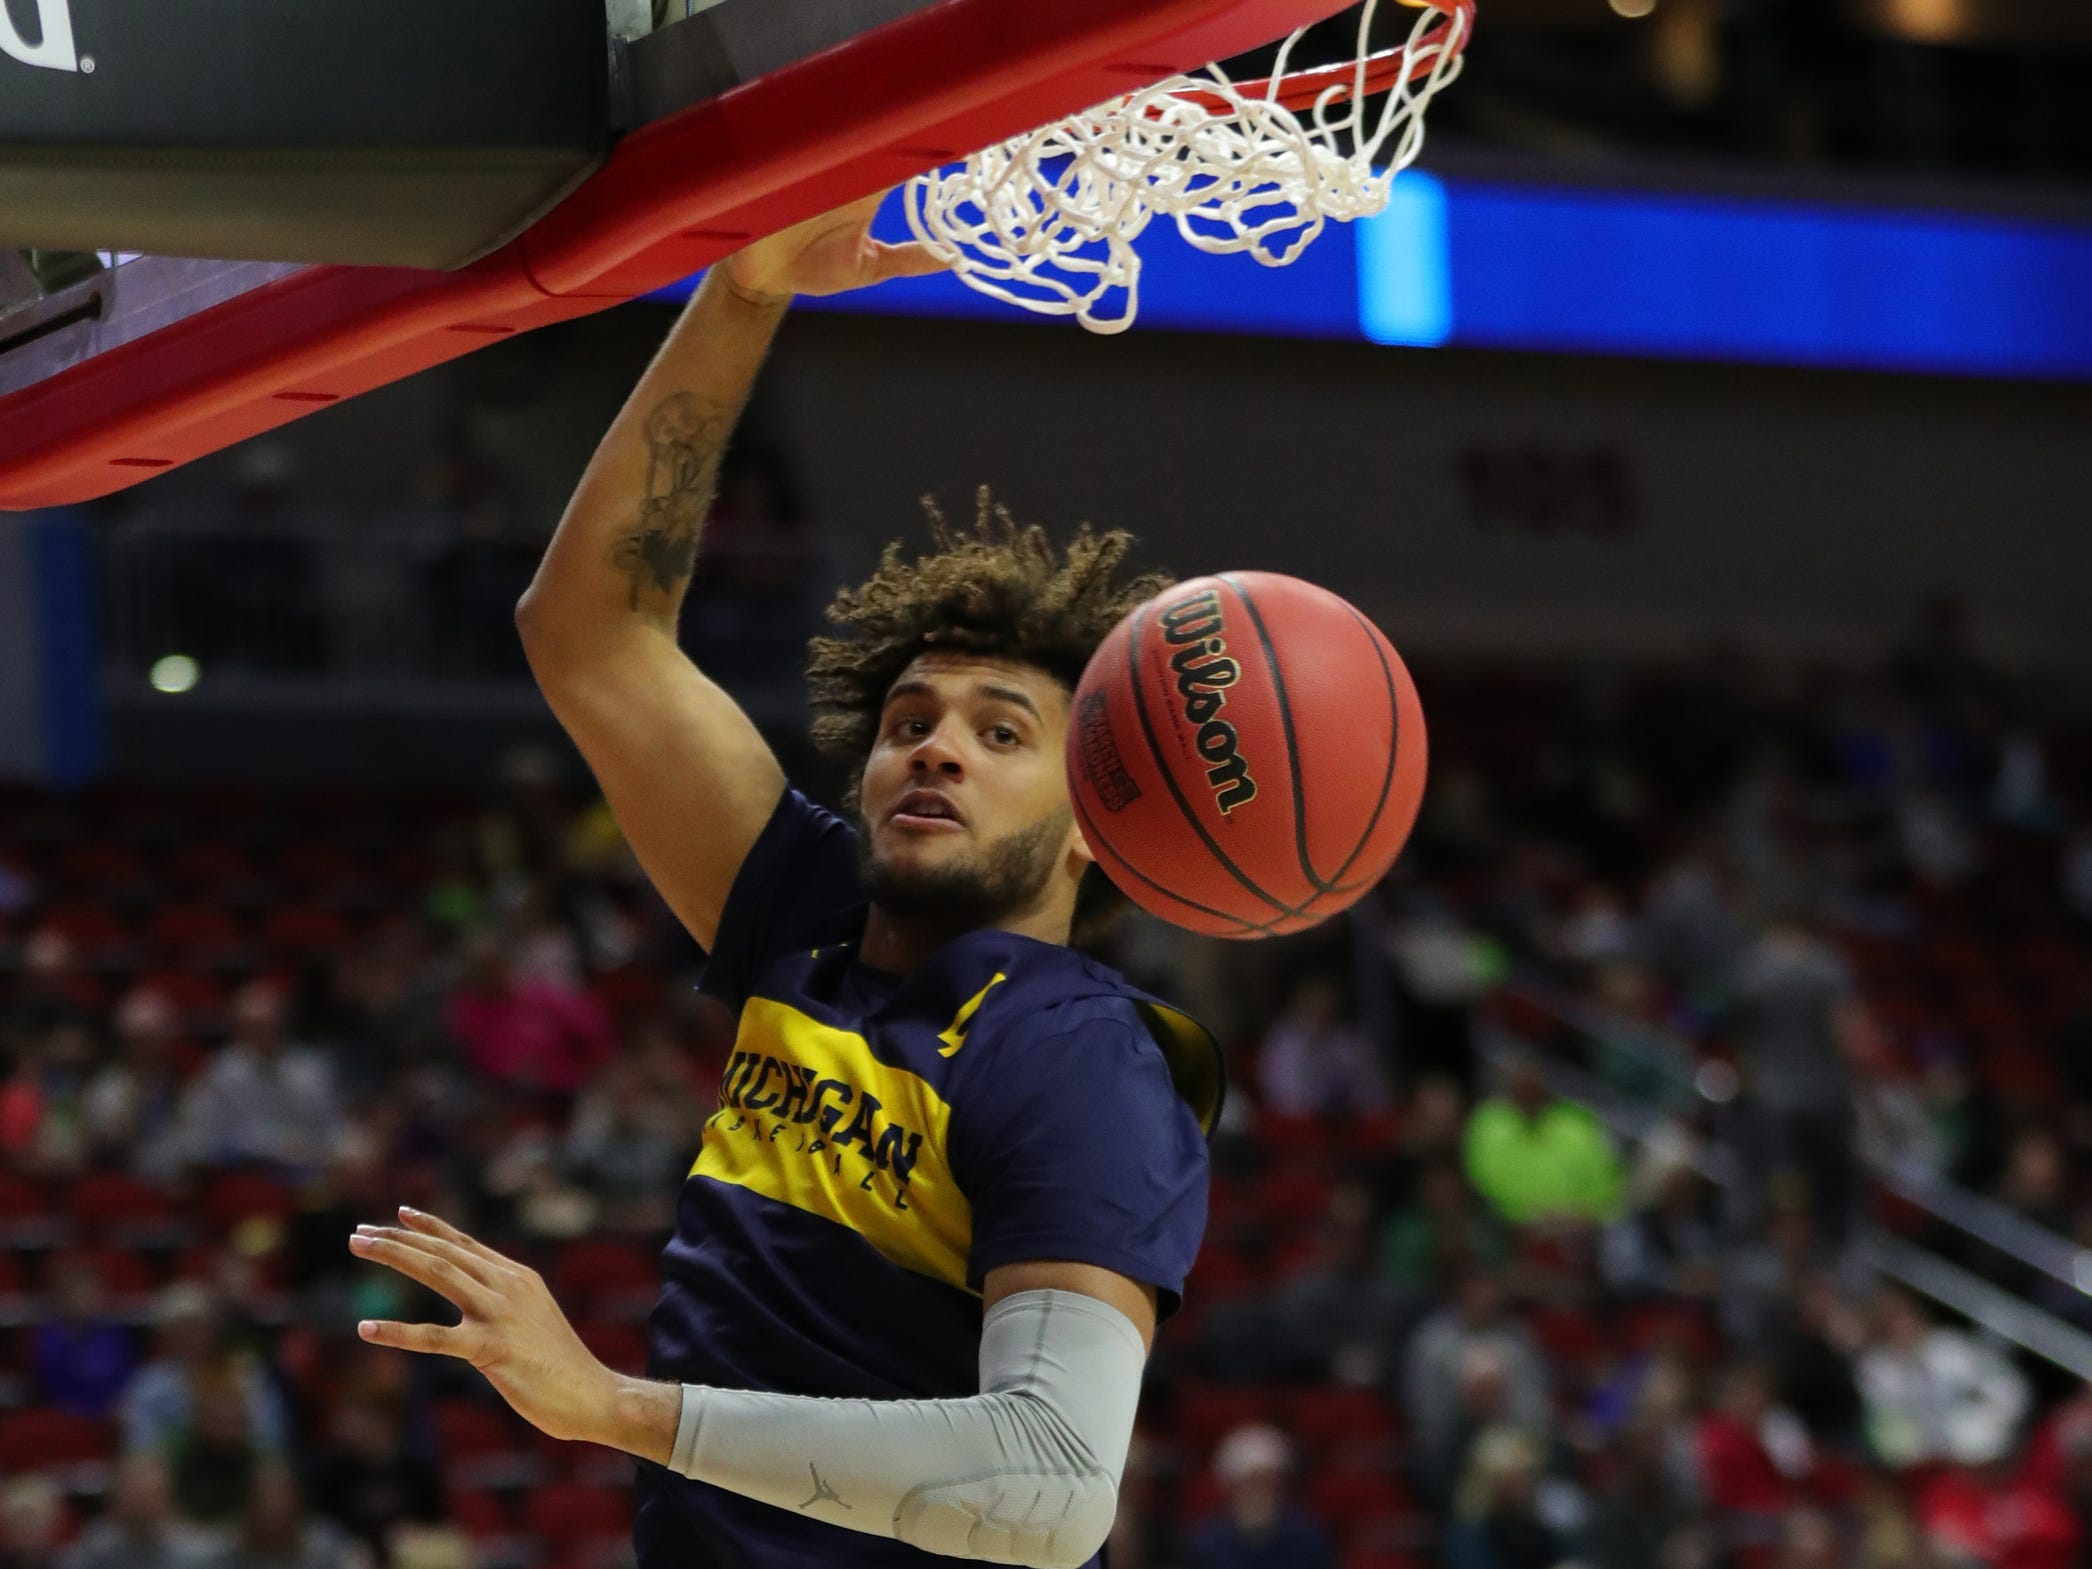 Michigan forward Isaiah Livers dunks during practice for their first round NCAA Tournament game against Montana Wednesday, March 20, 2019 at Wells Fargo Arena in Des Moines, Iowa.